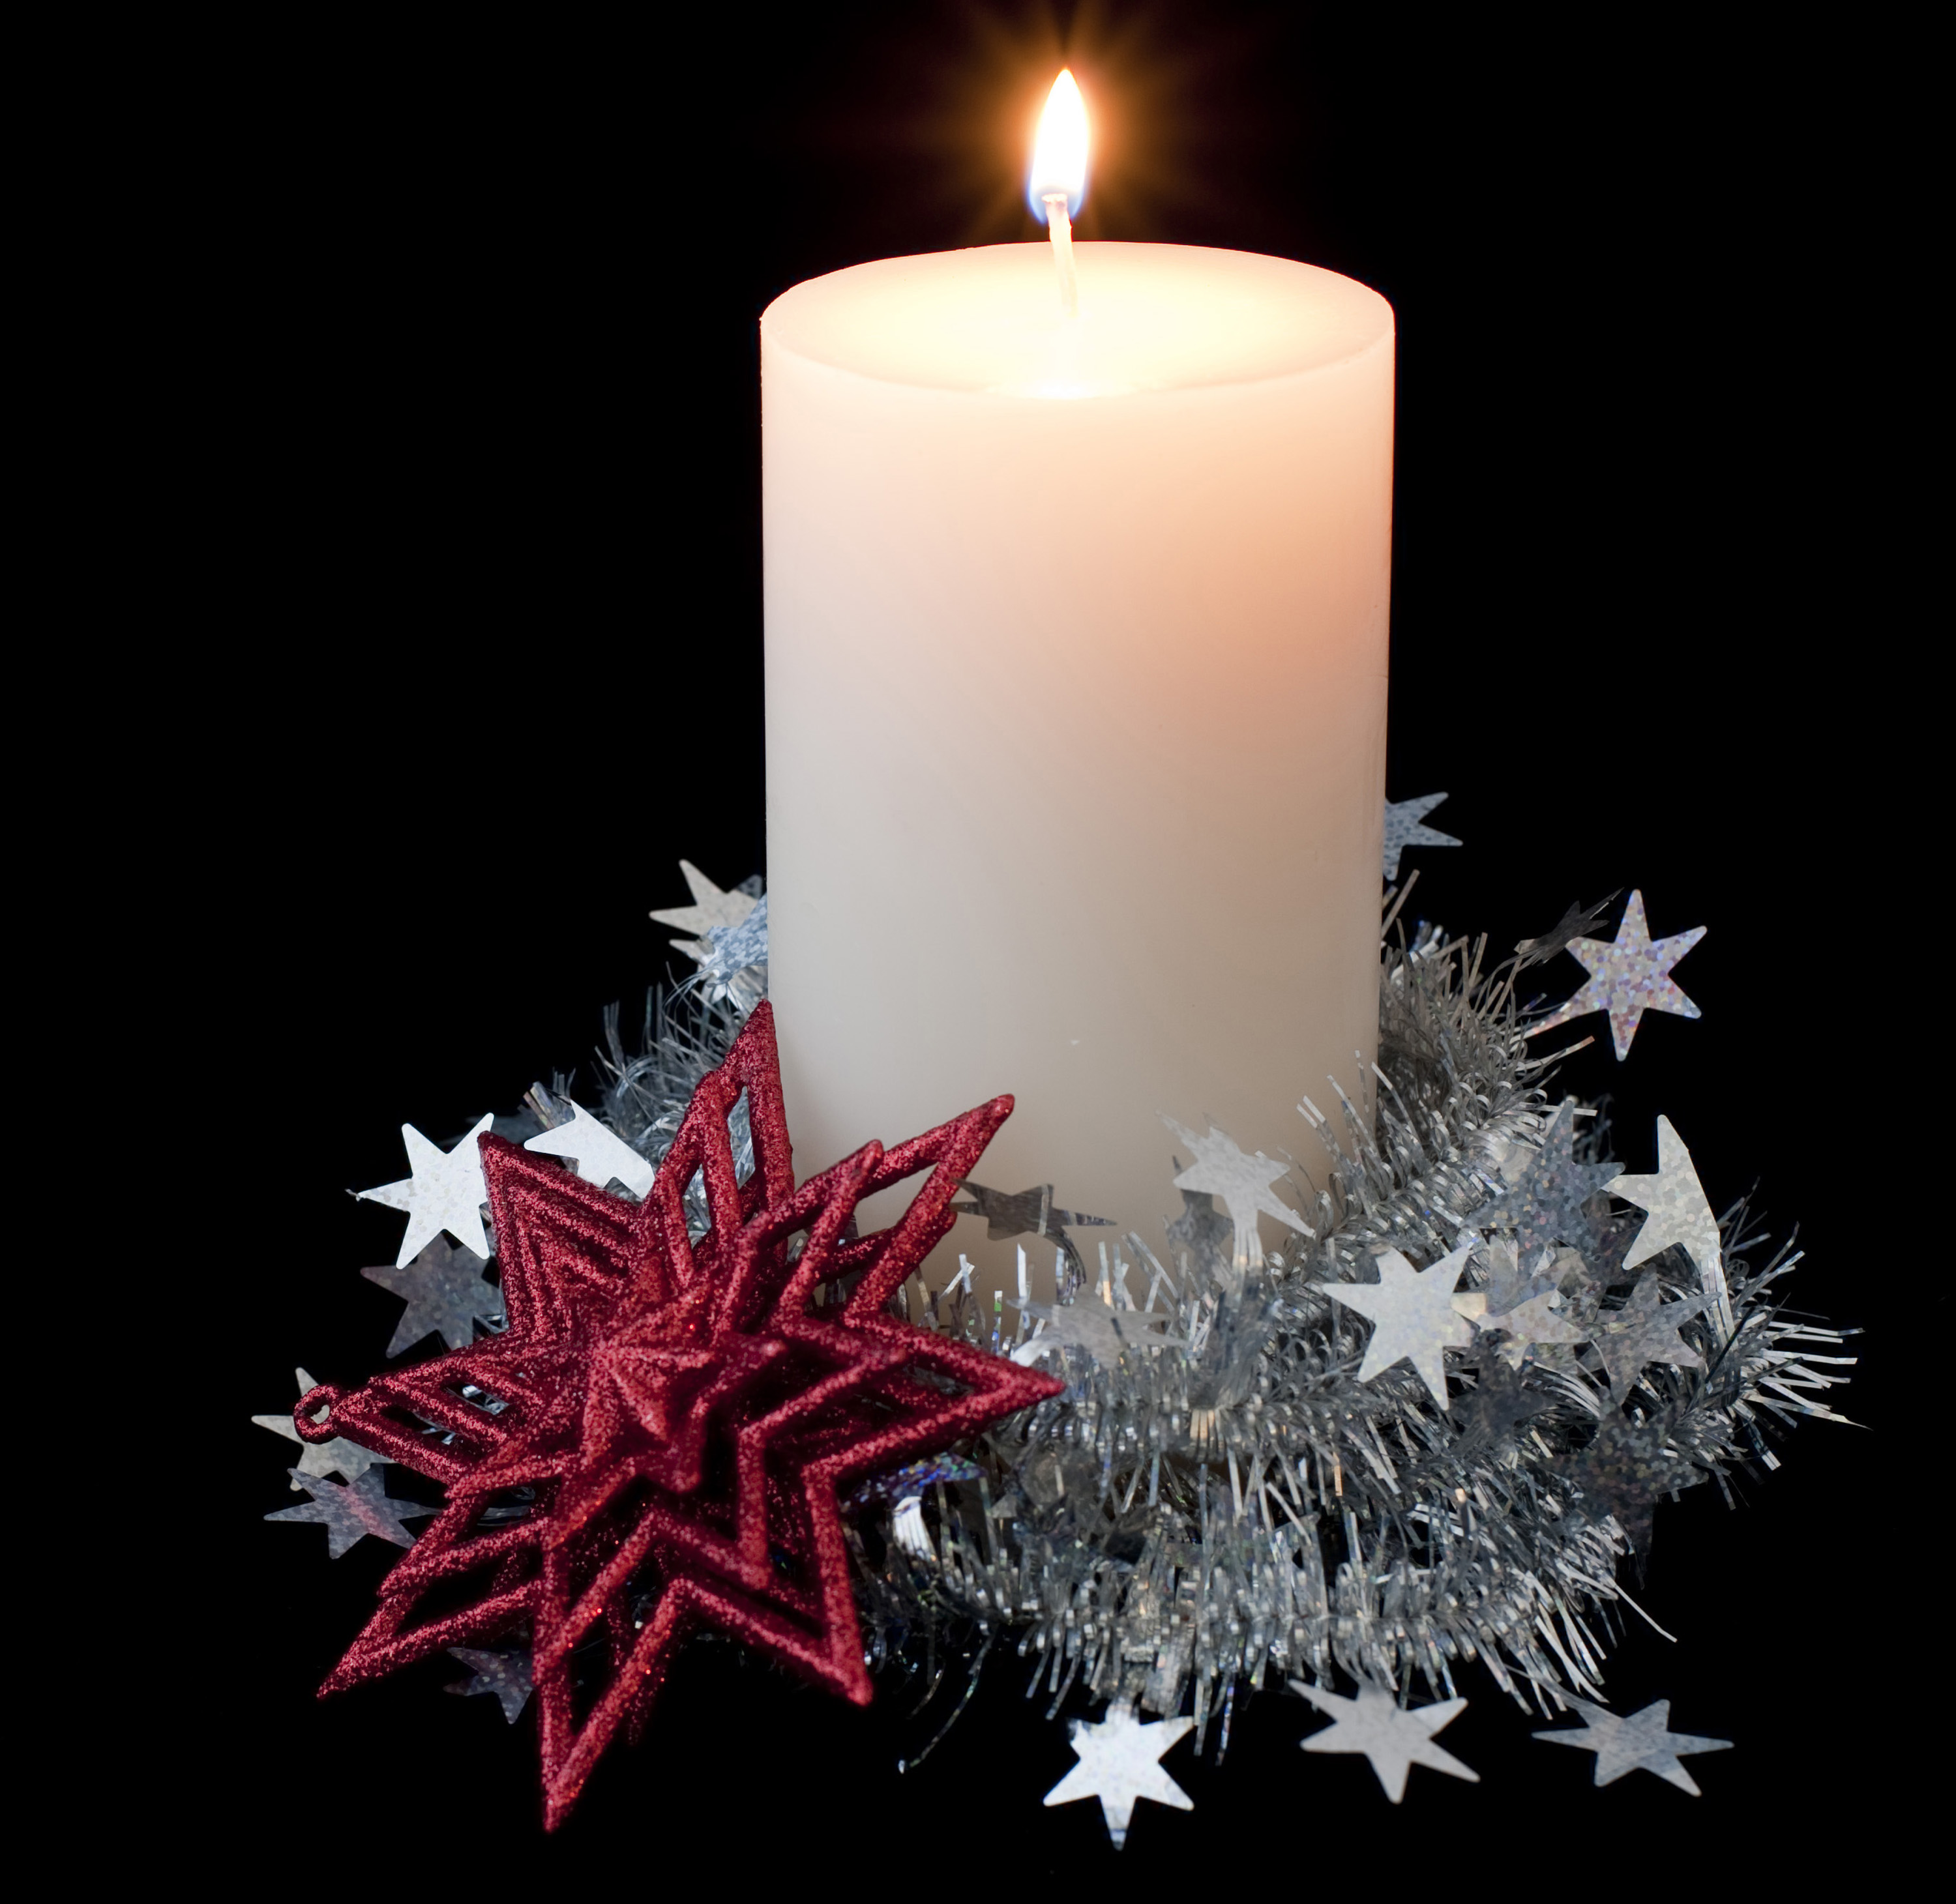 a burning pillar candle surrounded by seasonal decorations